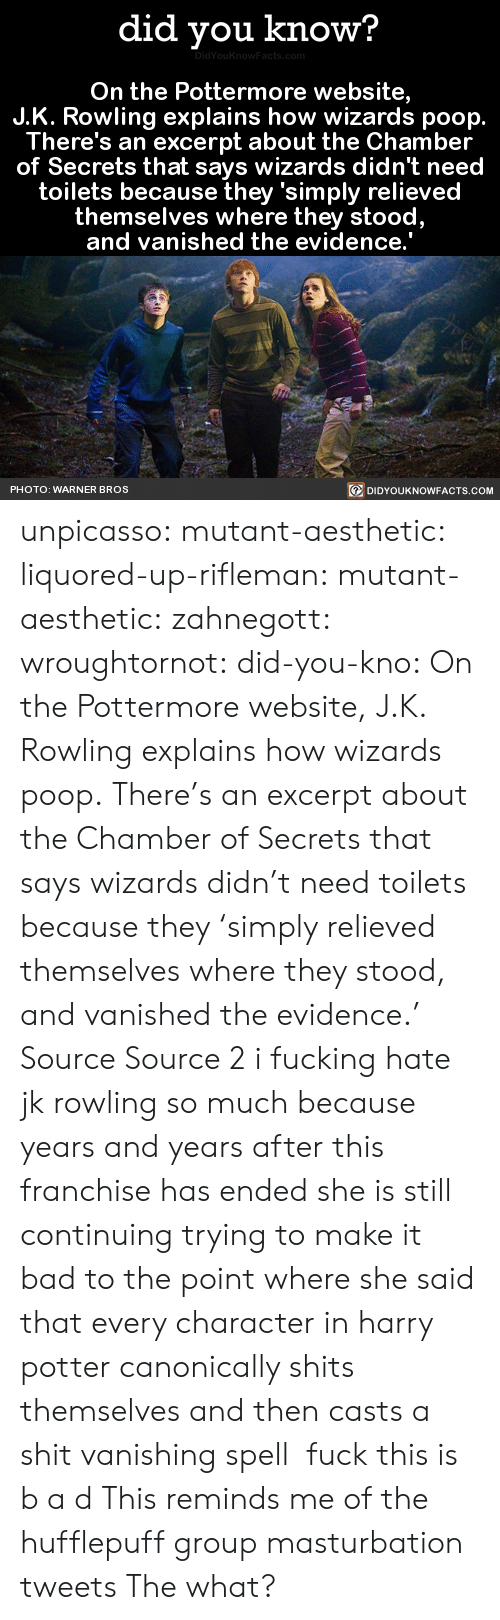 Vanishing: did you know?  On the Pottermore website,  J.K. Rowling explains how wizards poop.  There's an excerpt about the Chamber  of Secrets that says wizards didn't need  toilets because they 'simply relieved  themselves where they stood  and vanished the evidence.  PHOTO: WARNER BROS  DIDYOUKNOWFACTS.COM unpicasso:  mutant-aesthetic:  liquored-up-rifleman:  mutant-aesthetic:   zahnegott:  wroughtornot:  did-you-kno: On the Pottermore website, J.K. Rowling explains how wizards poop. There's an excerpt about the Chamber of Secrets that says wizards didn't need toilets because they 'simply relieved themselves where they stood, and vanished the evidence.'  Source Source 2 i fucking hate jk rowling so much because years and years after this franchise has ended she is still continuing trying to make it bad to the point where she said that every character in harry potter canonically shits themselves and then casts a shit vanishing spell  fuck this is b a d   This reminds me of the hufflepuff group masturbation tweets   The what?